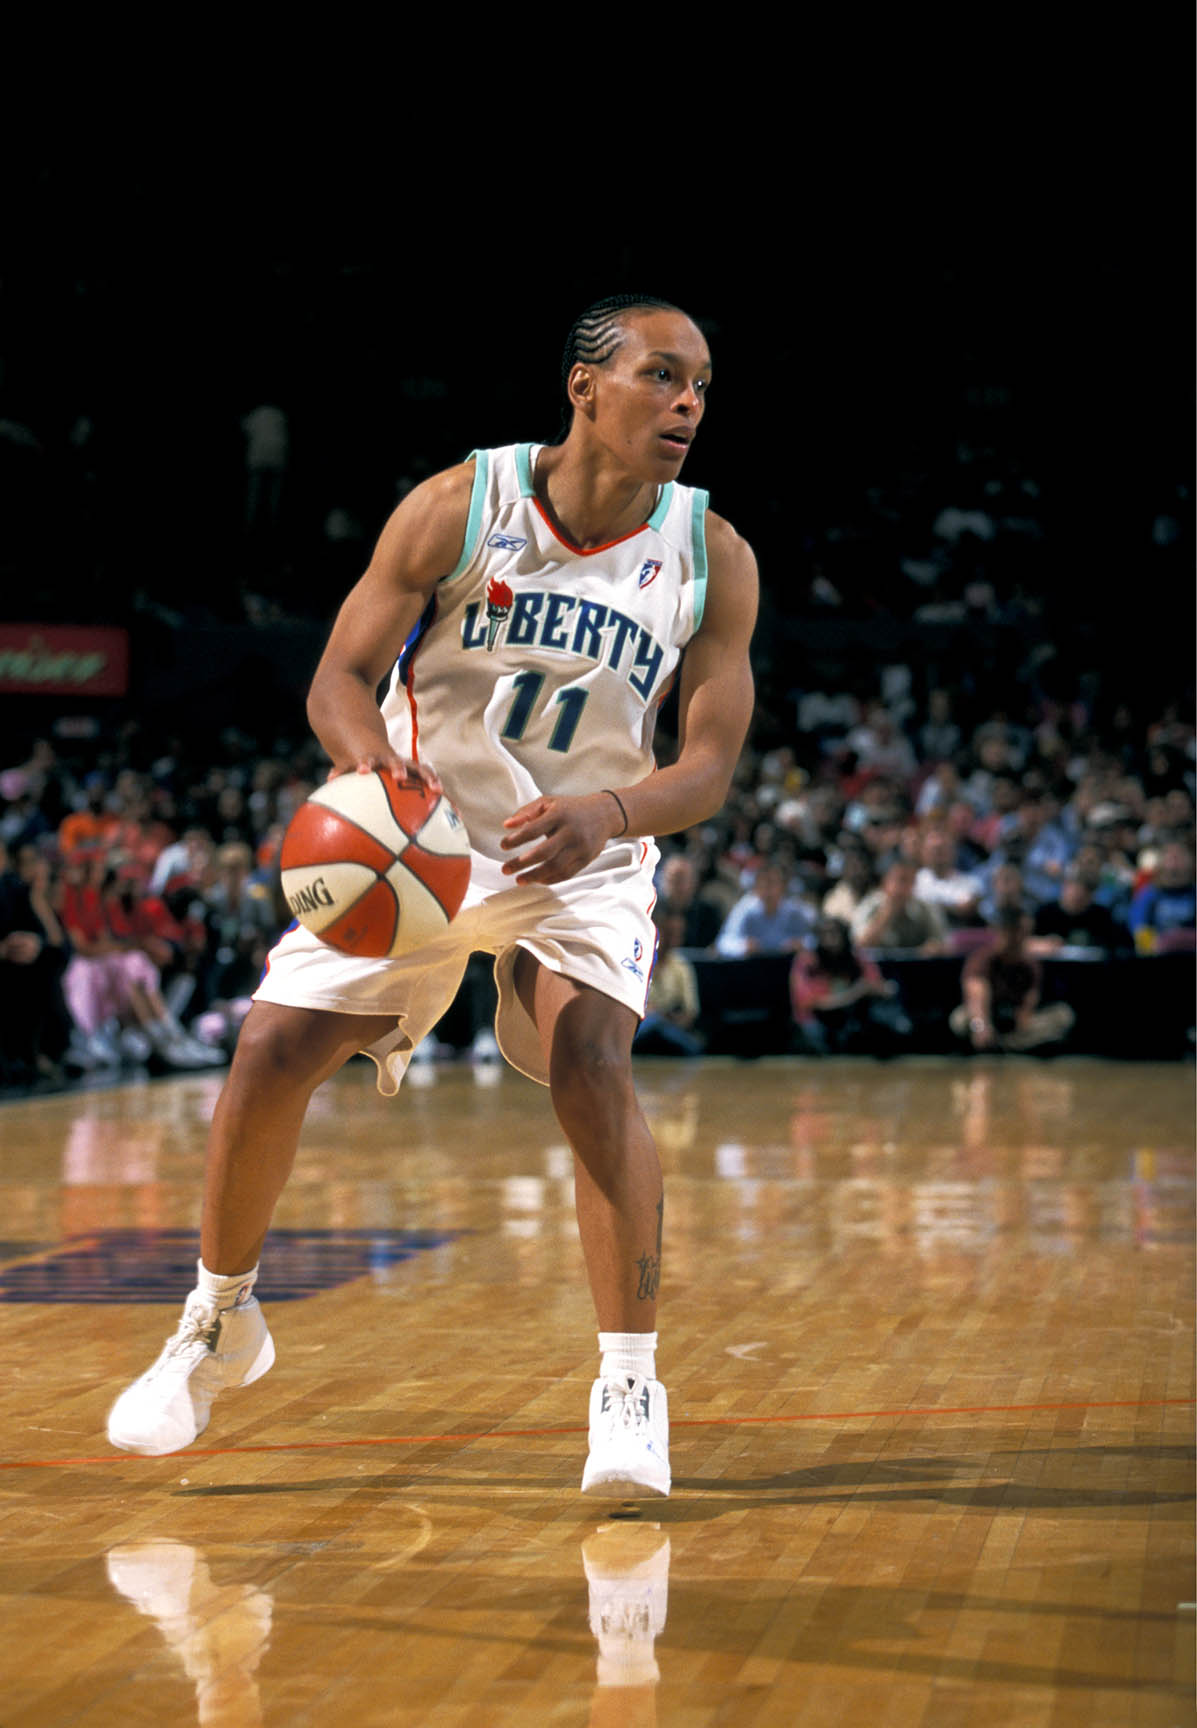 8/1/03 Liberty v. Shock - Sue Wicks Night Teresa Weatherspoon